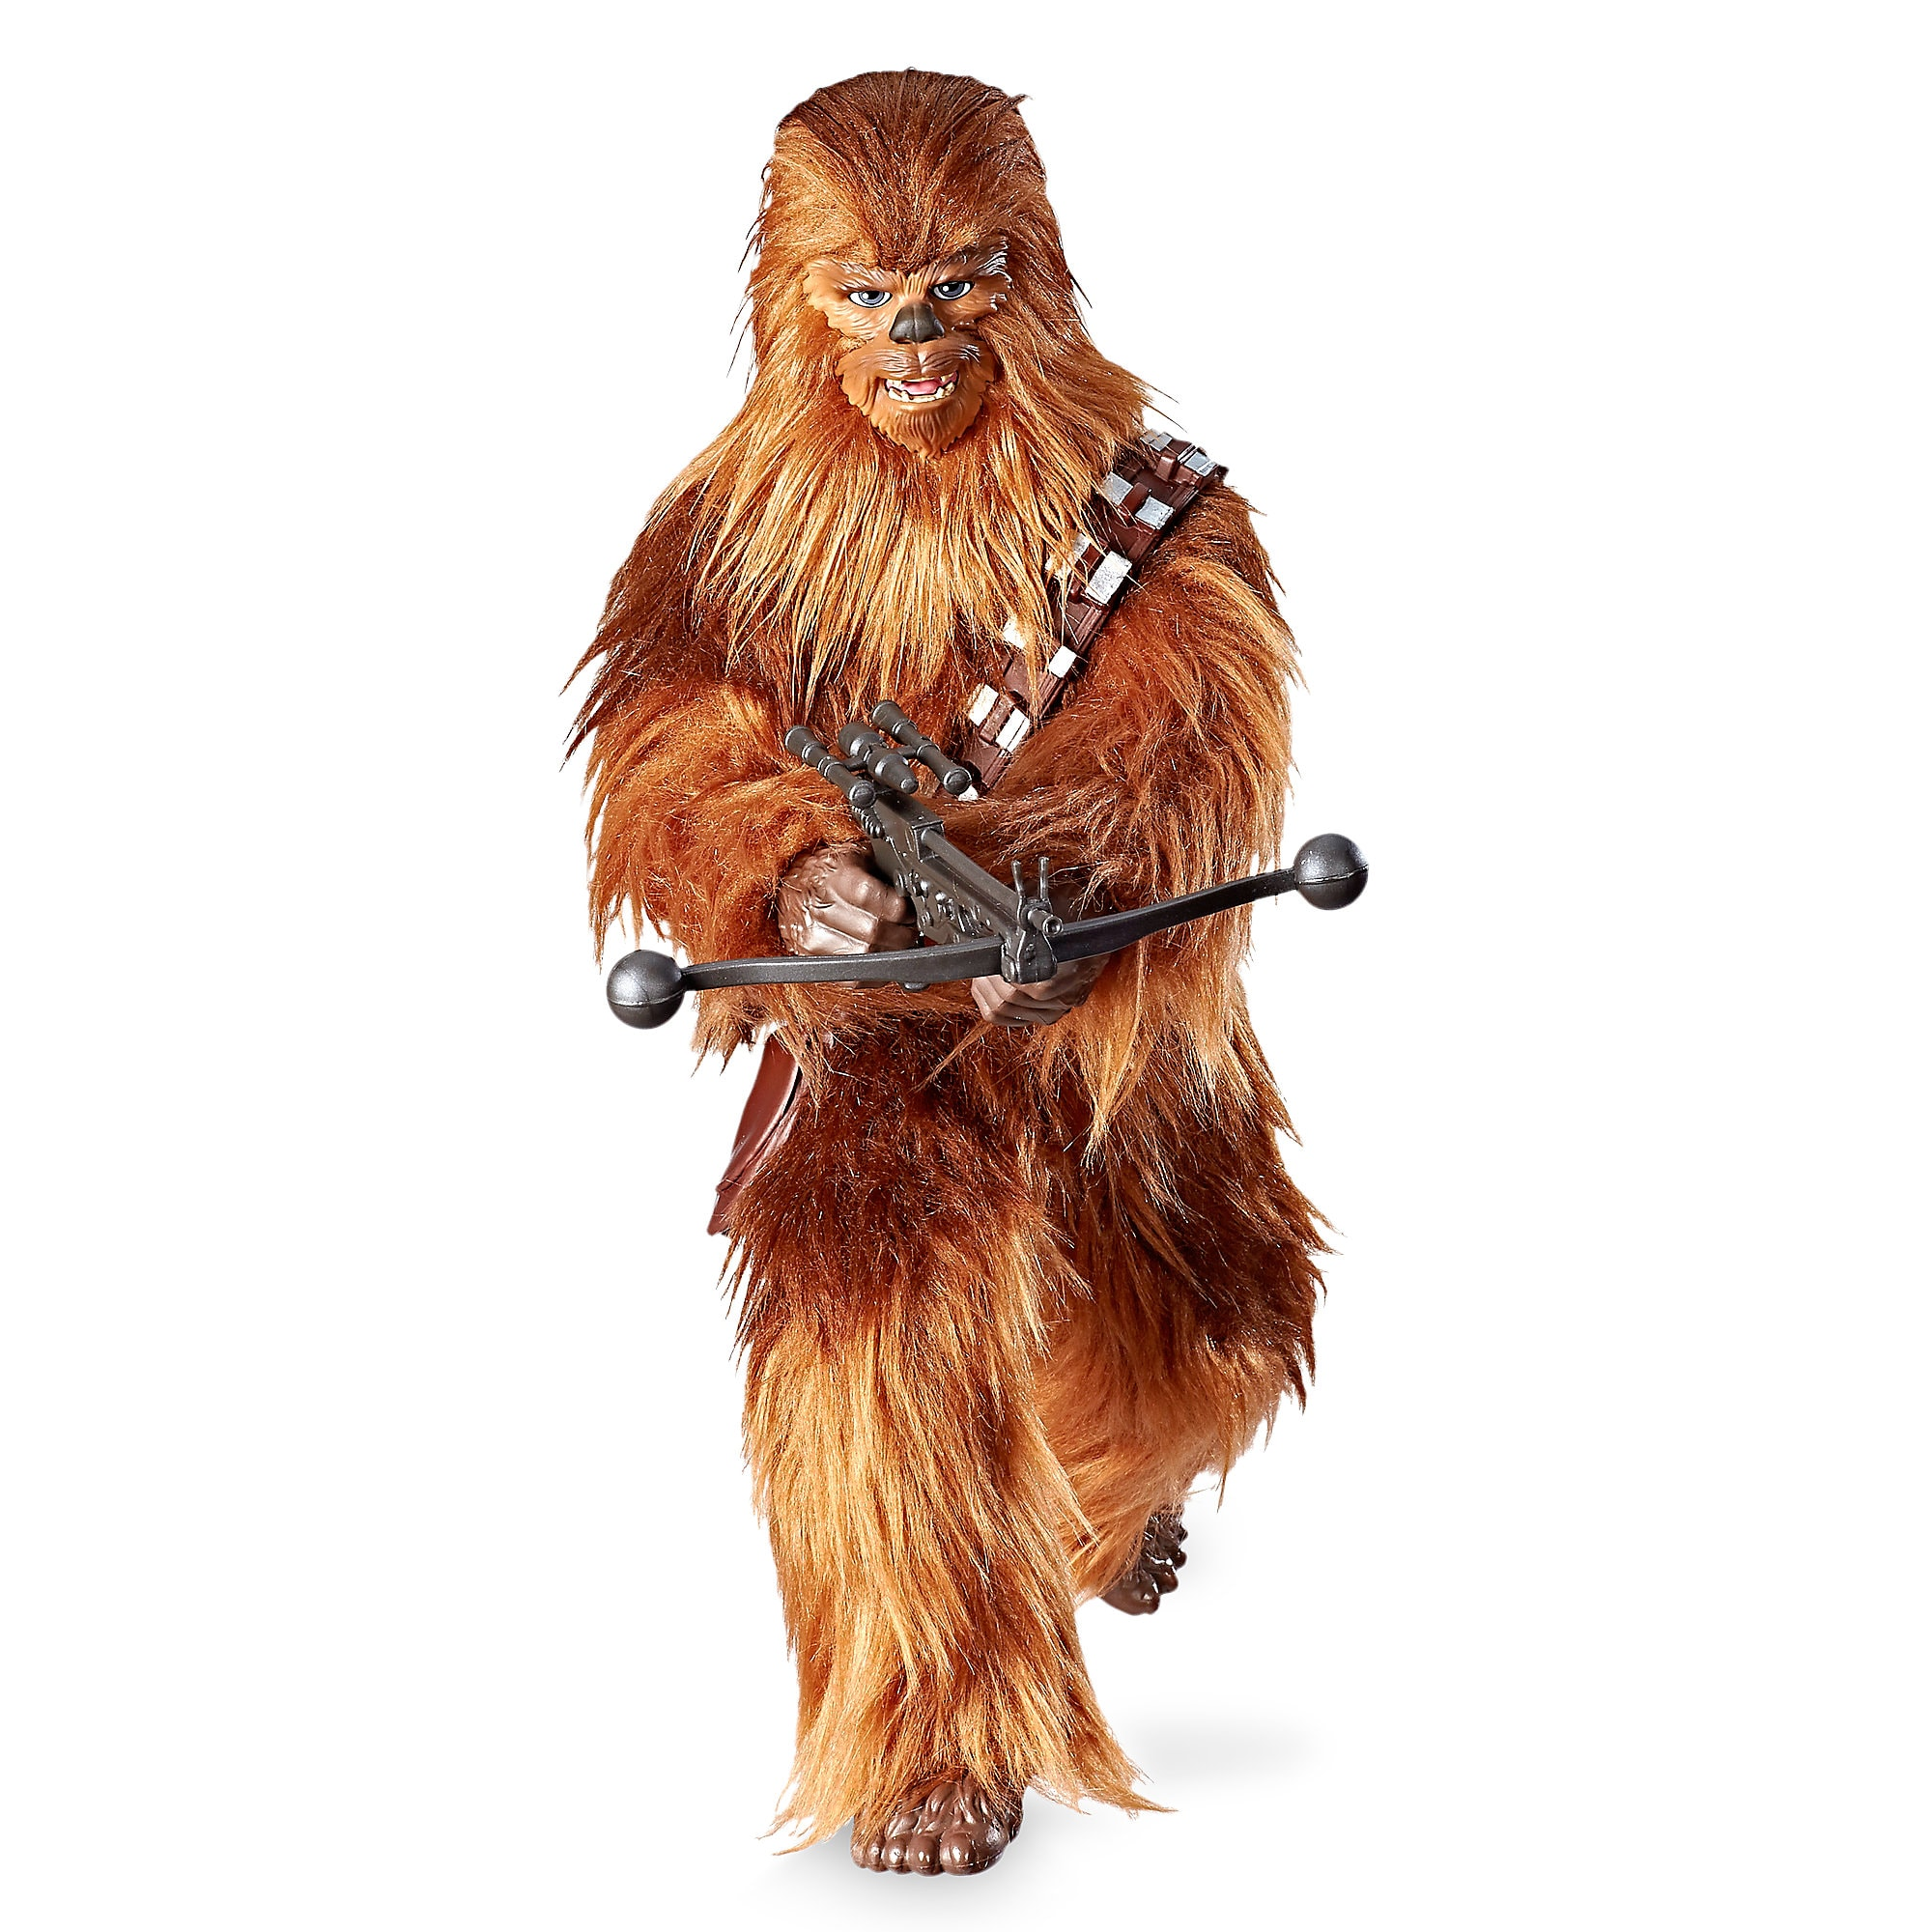 Chewbacca Roaring Adventure Figure - Star Wars: Forces of Destiny